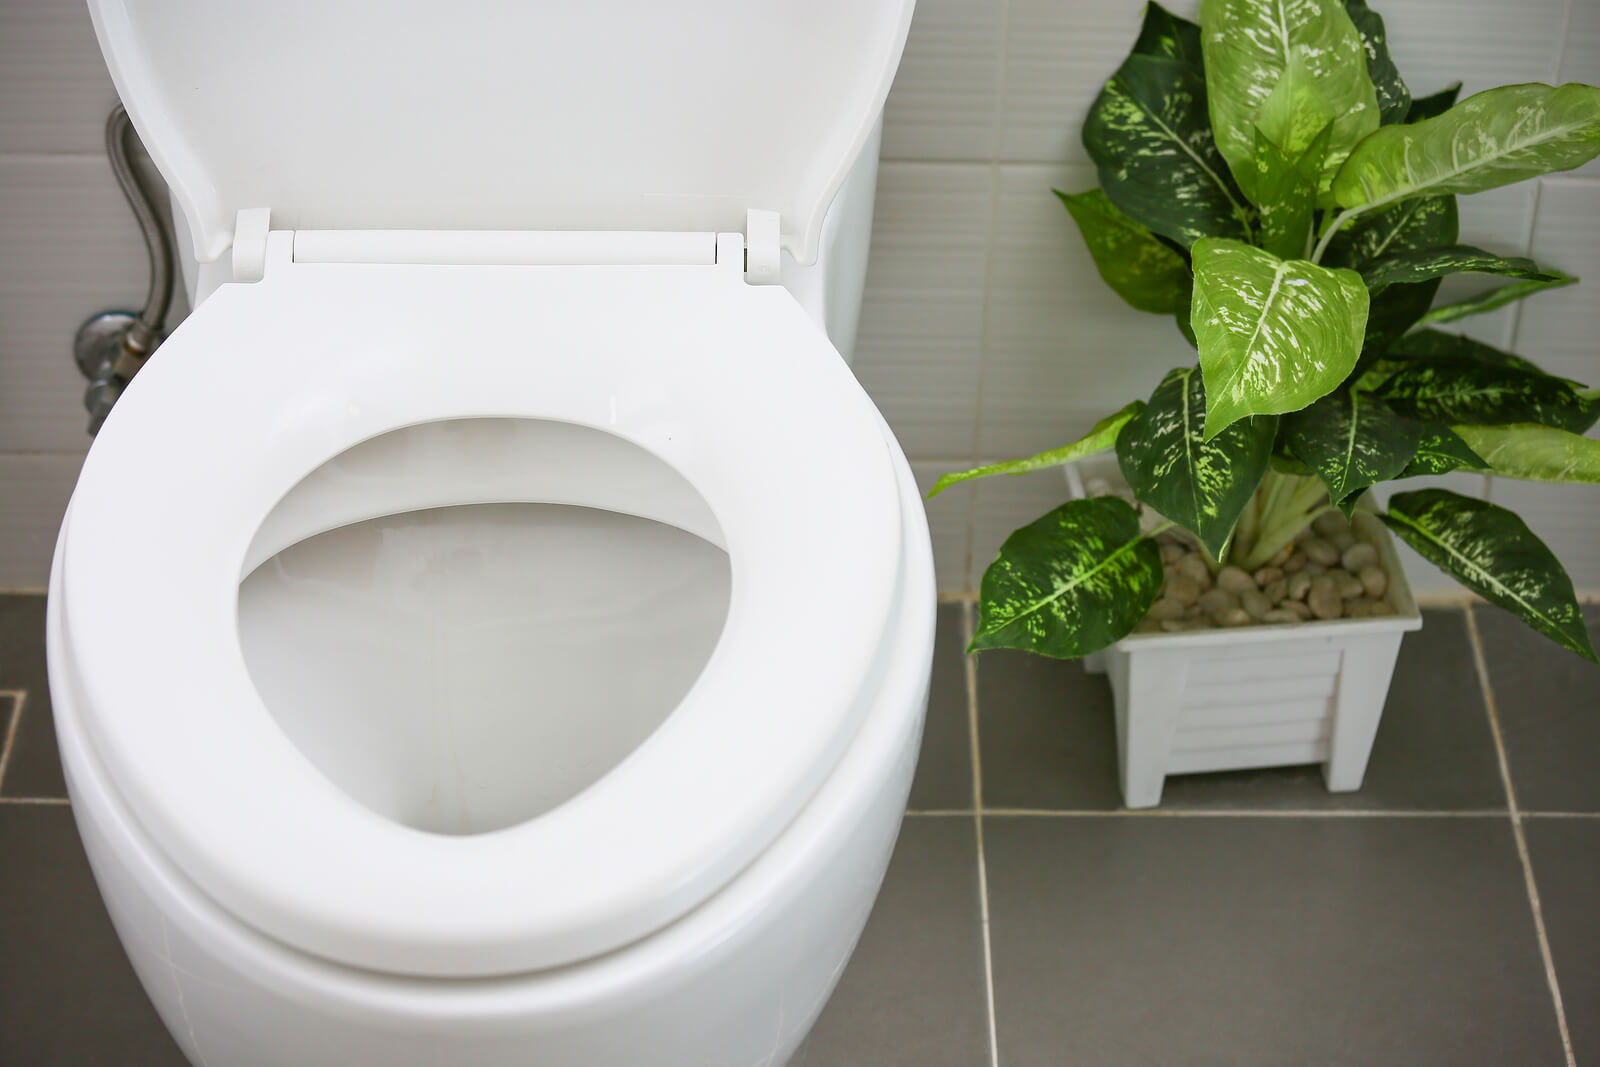 toilet replacement in Sacramento by America's Plumbing